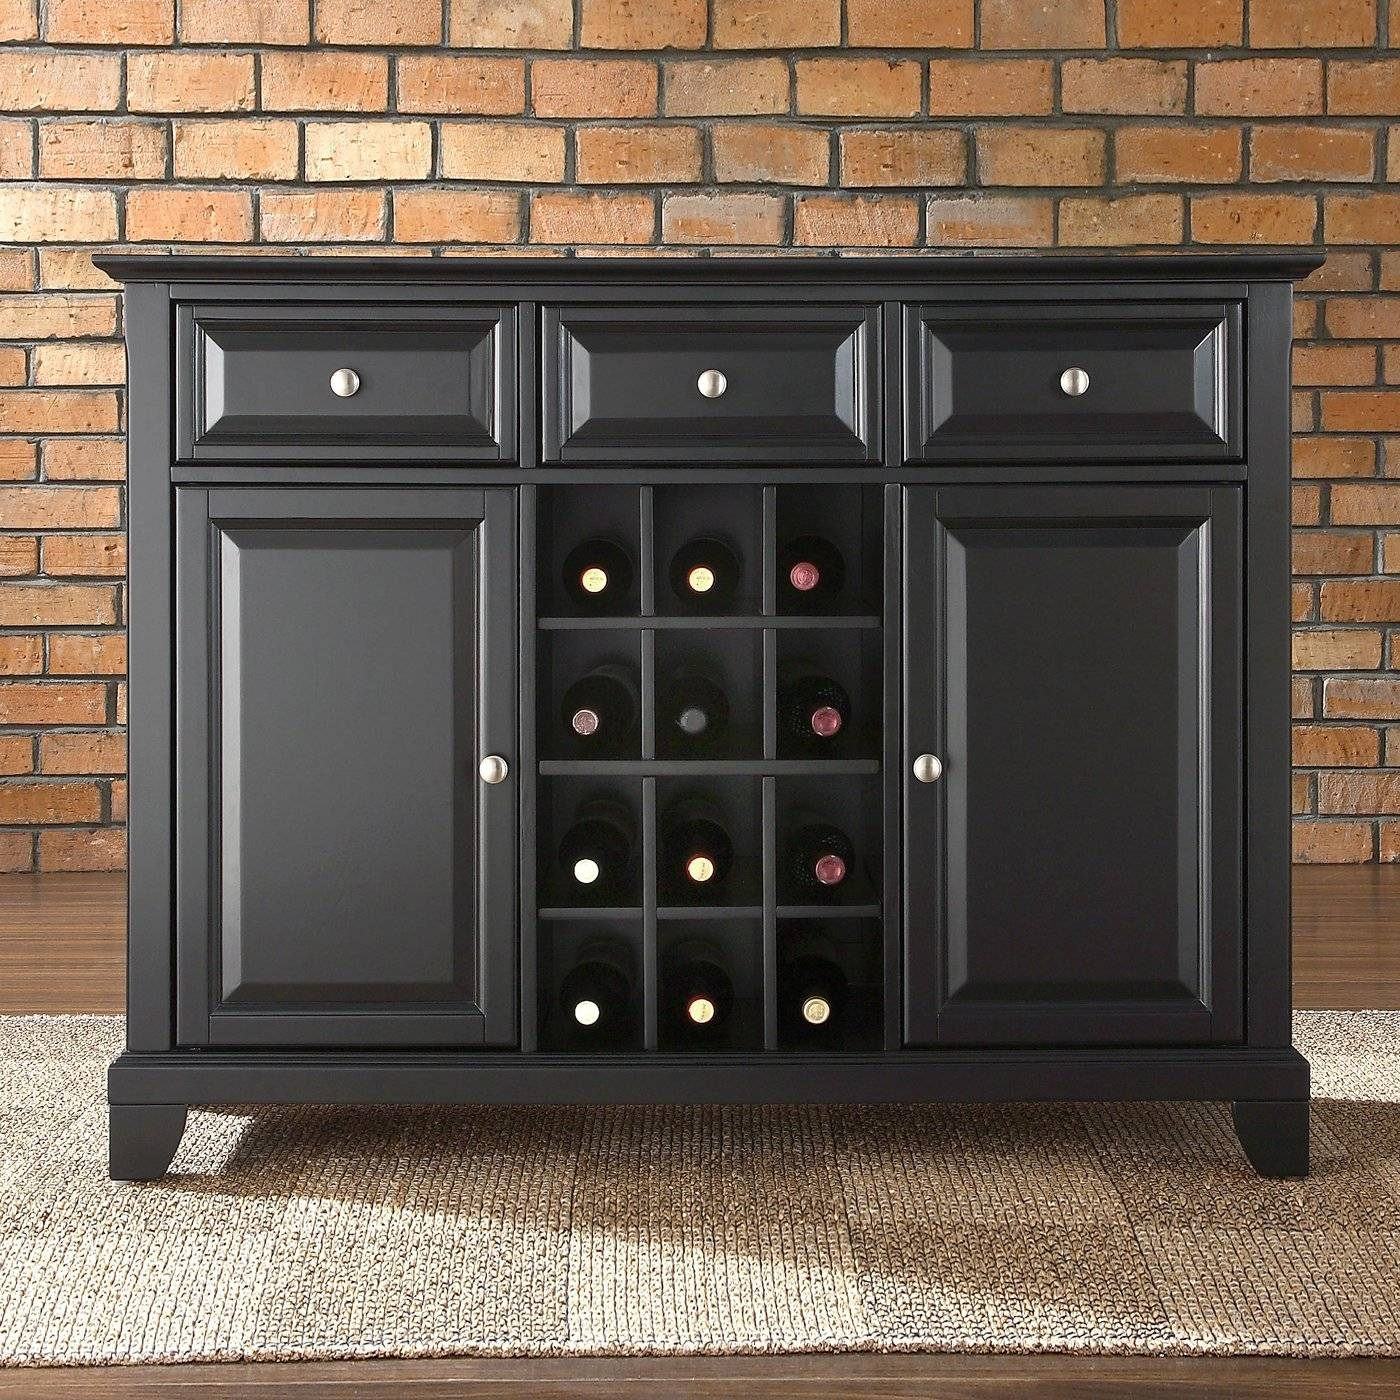 Using Old Oak Sideboard Buffet » Home Decorations Insight Intended For Most Popular Black Sideboards And Buffets (#15 of 15)